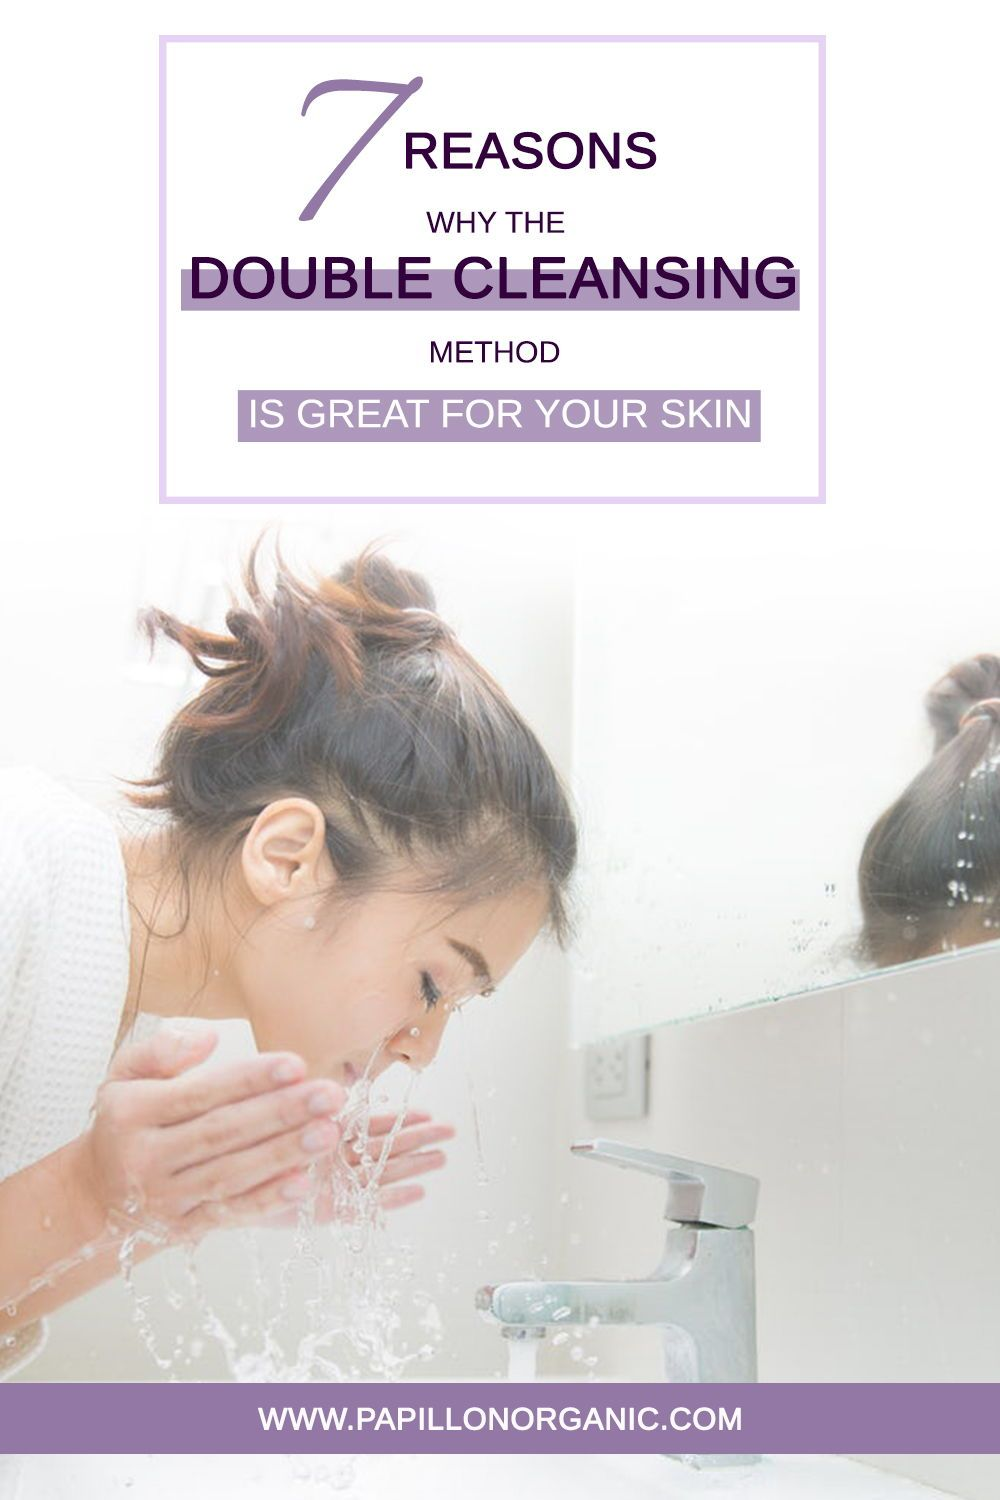 7 reasons why the double cleansing method is great for